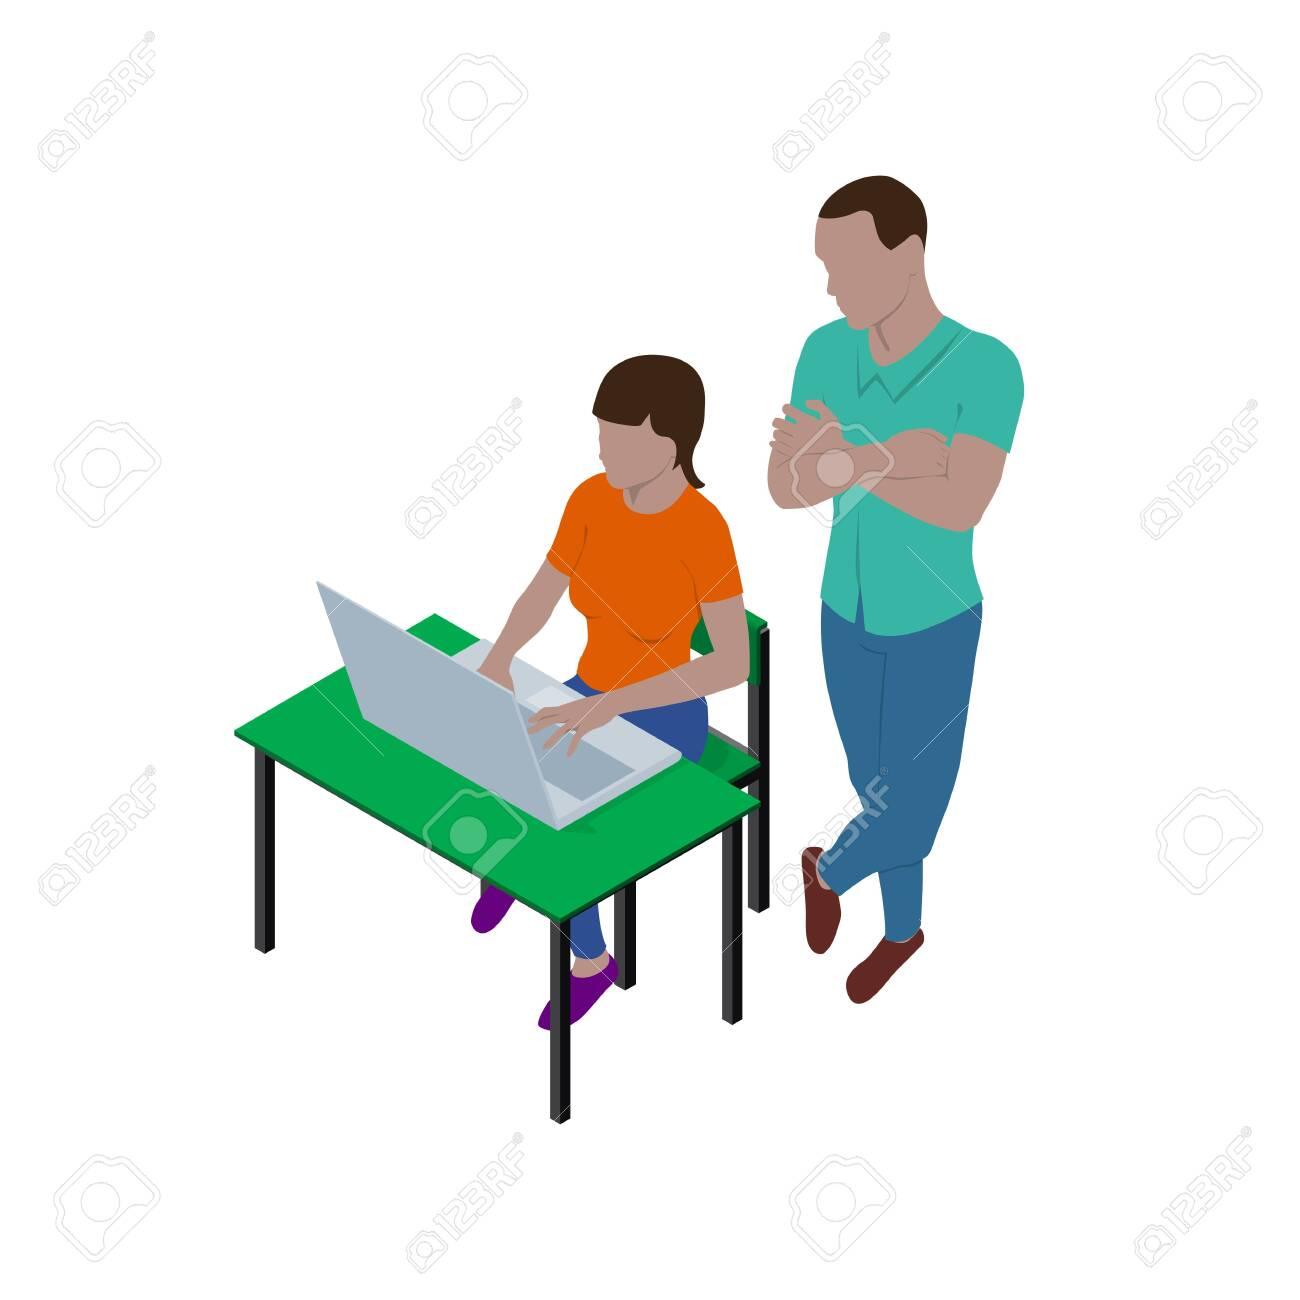 Girl sitting at desk with laptop and guy is standing nearby and watching what she is doing. People in isometric view. Teacher and student or boss and employee. - 154513086